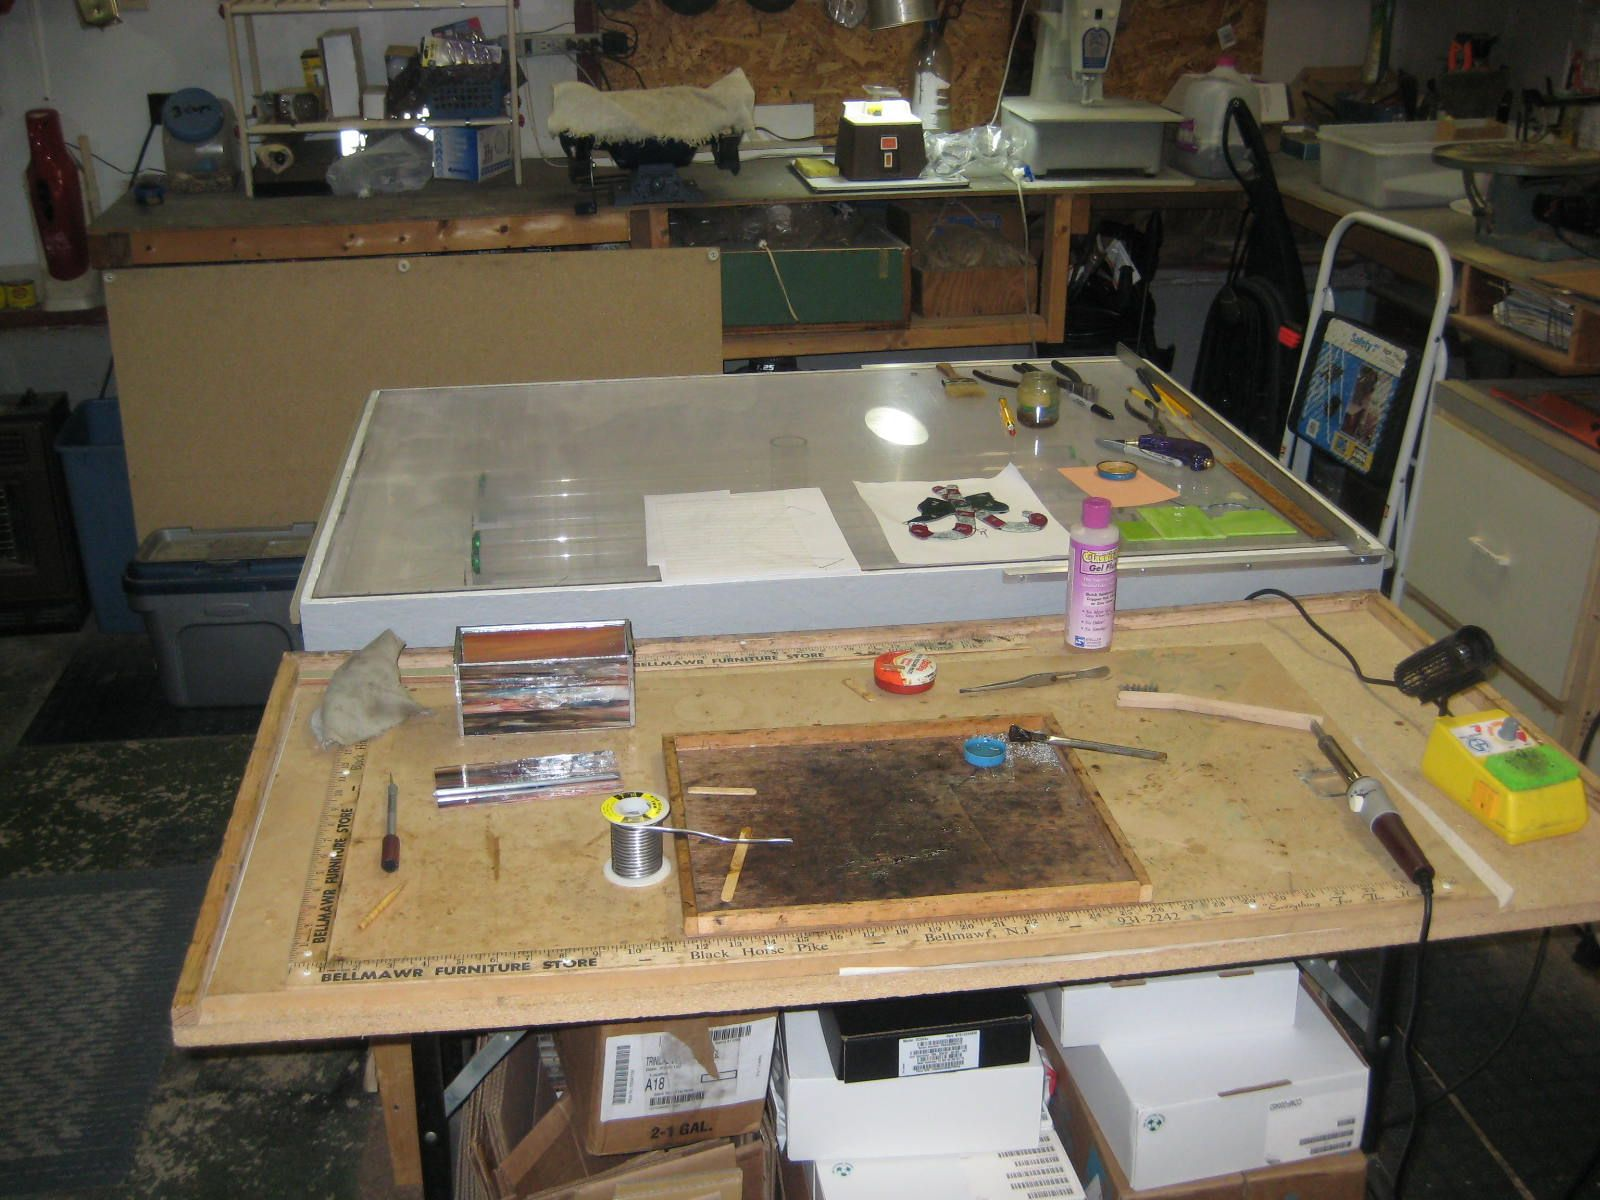 Stained Glass Work Table: Rulers on the edges, raised ...